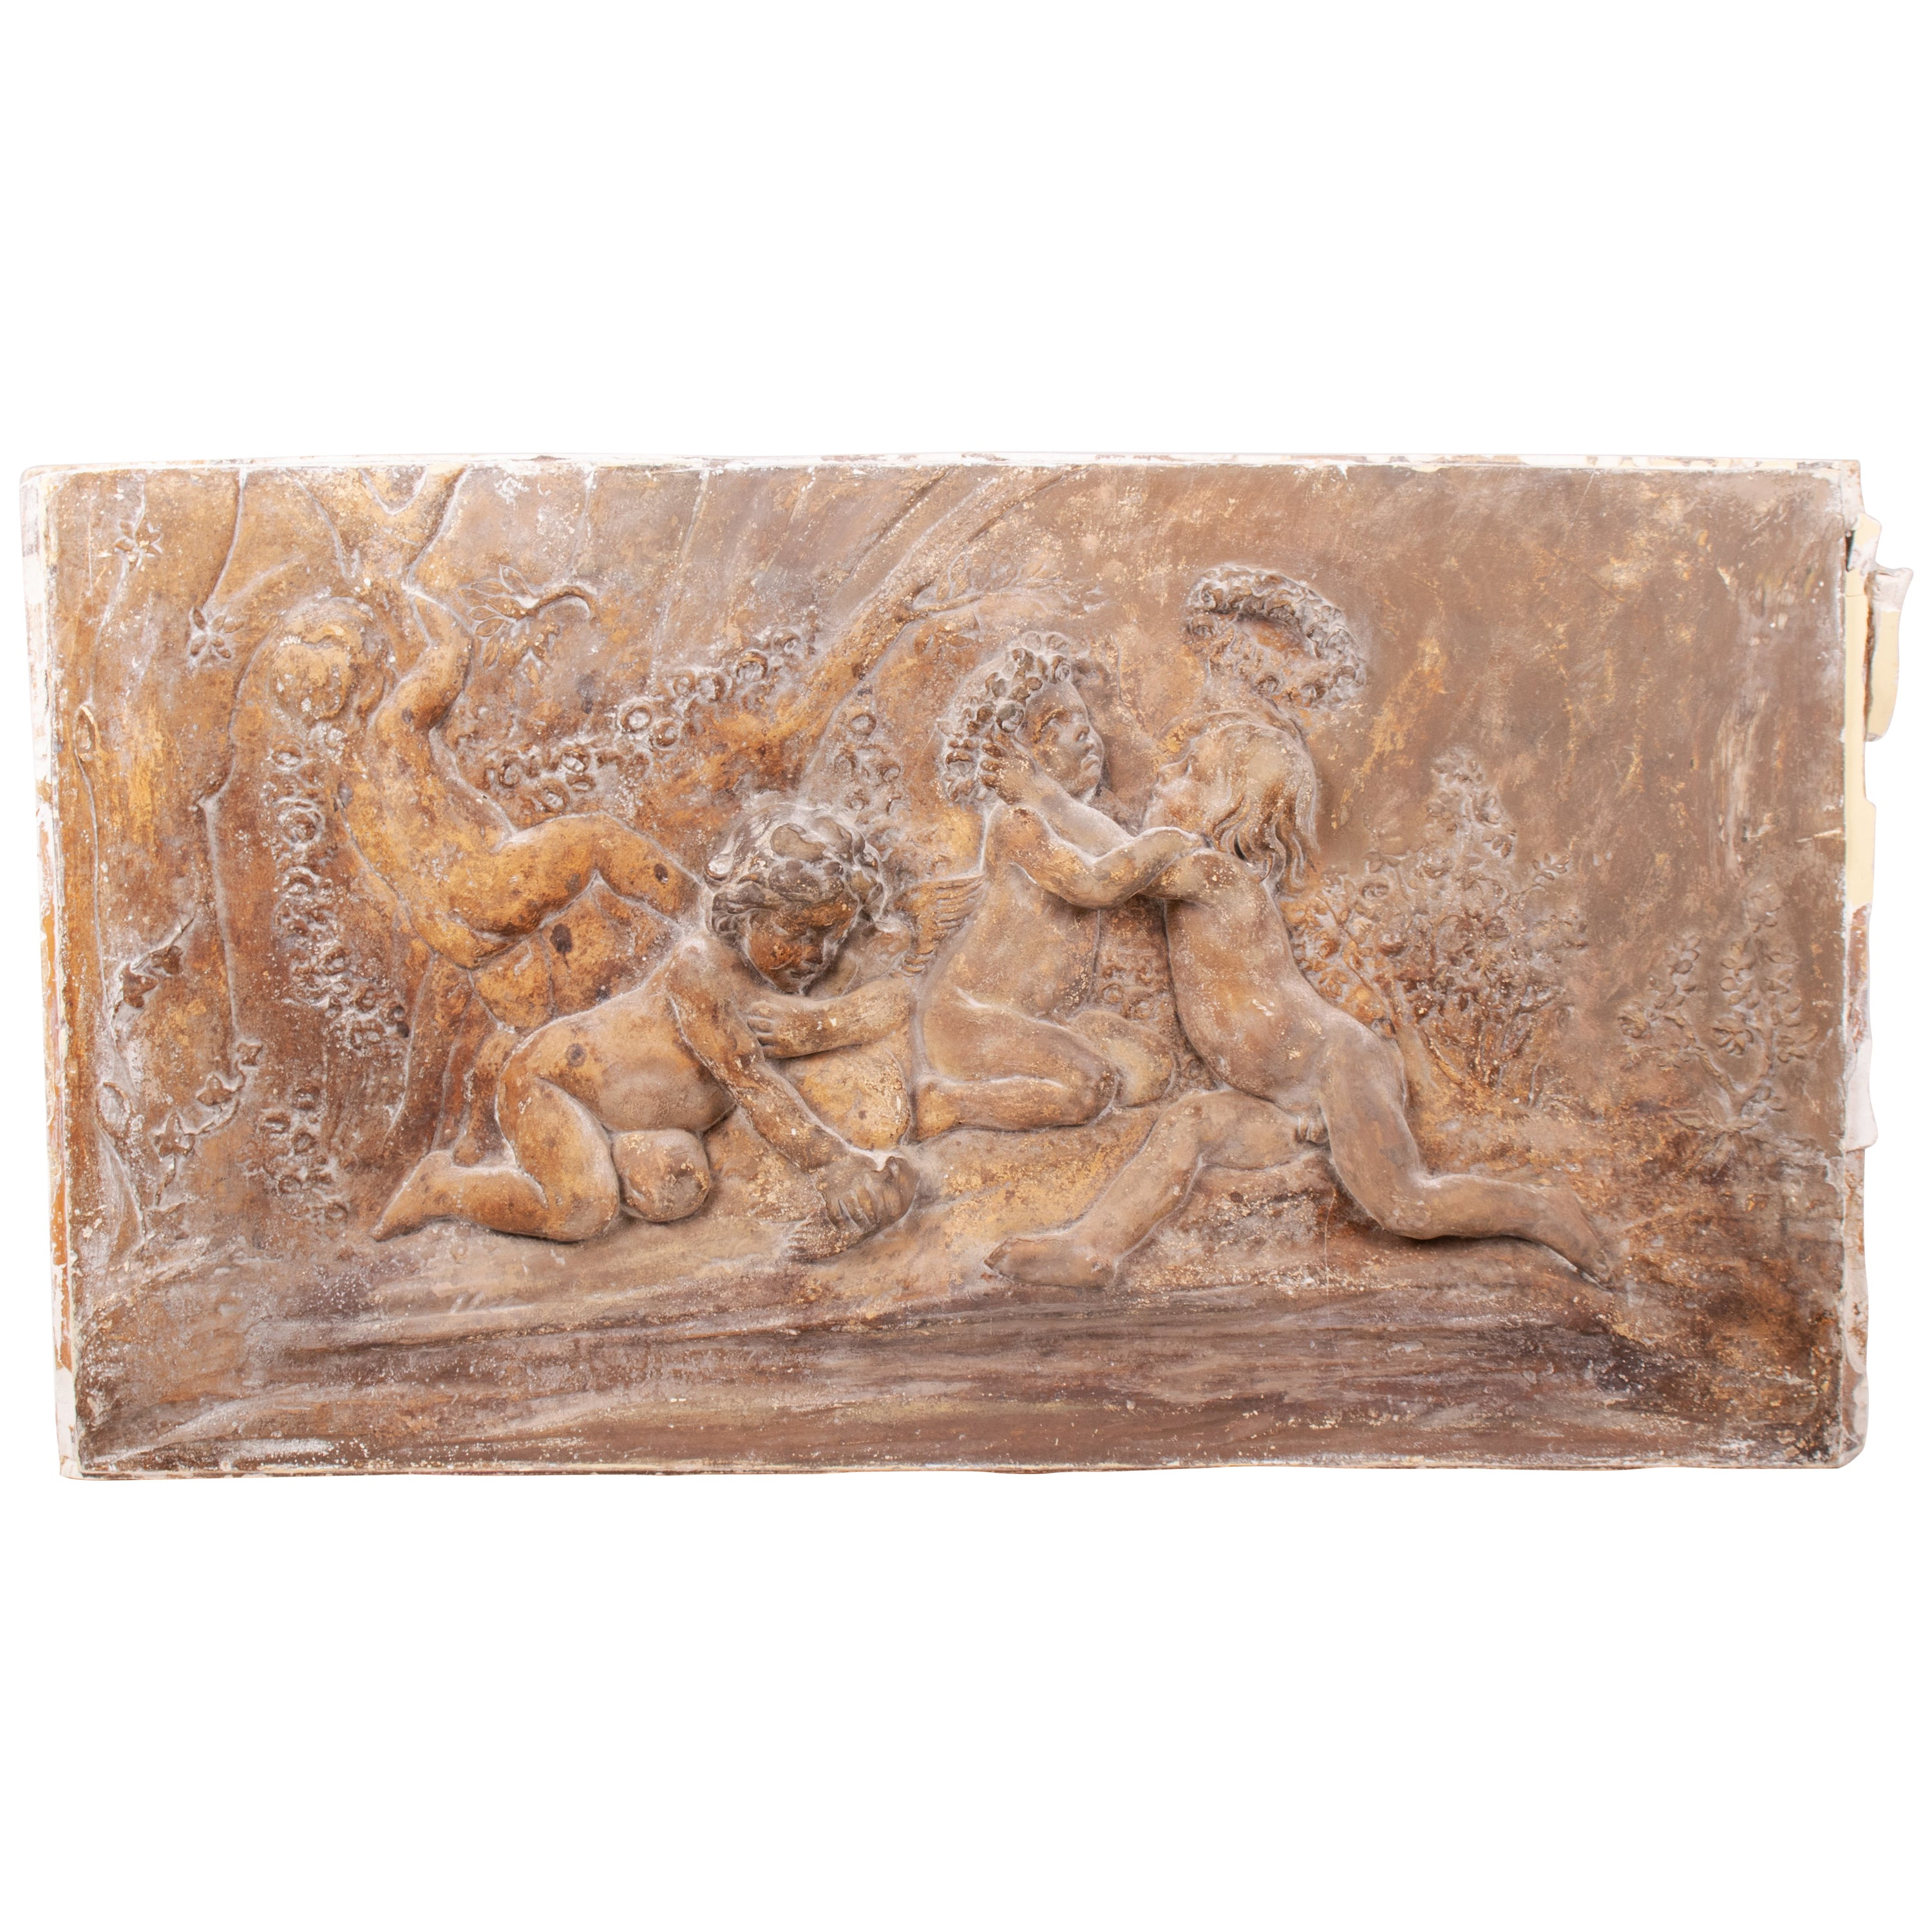 19th Century French Stucco Relief with Cherubs and Garlands